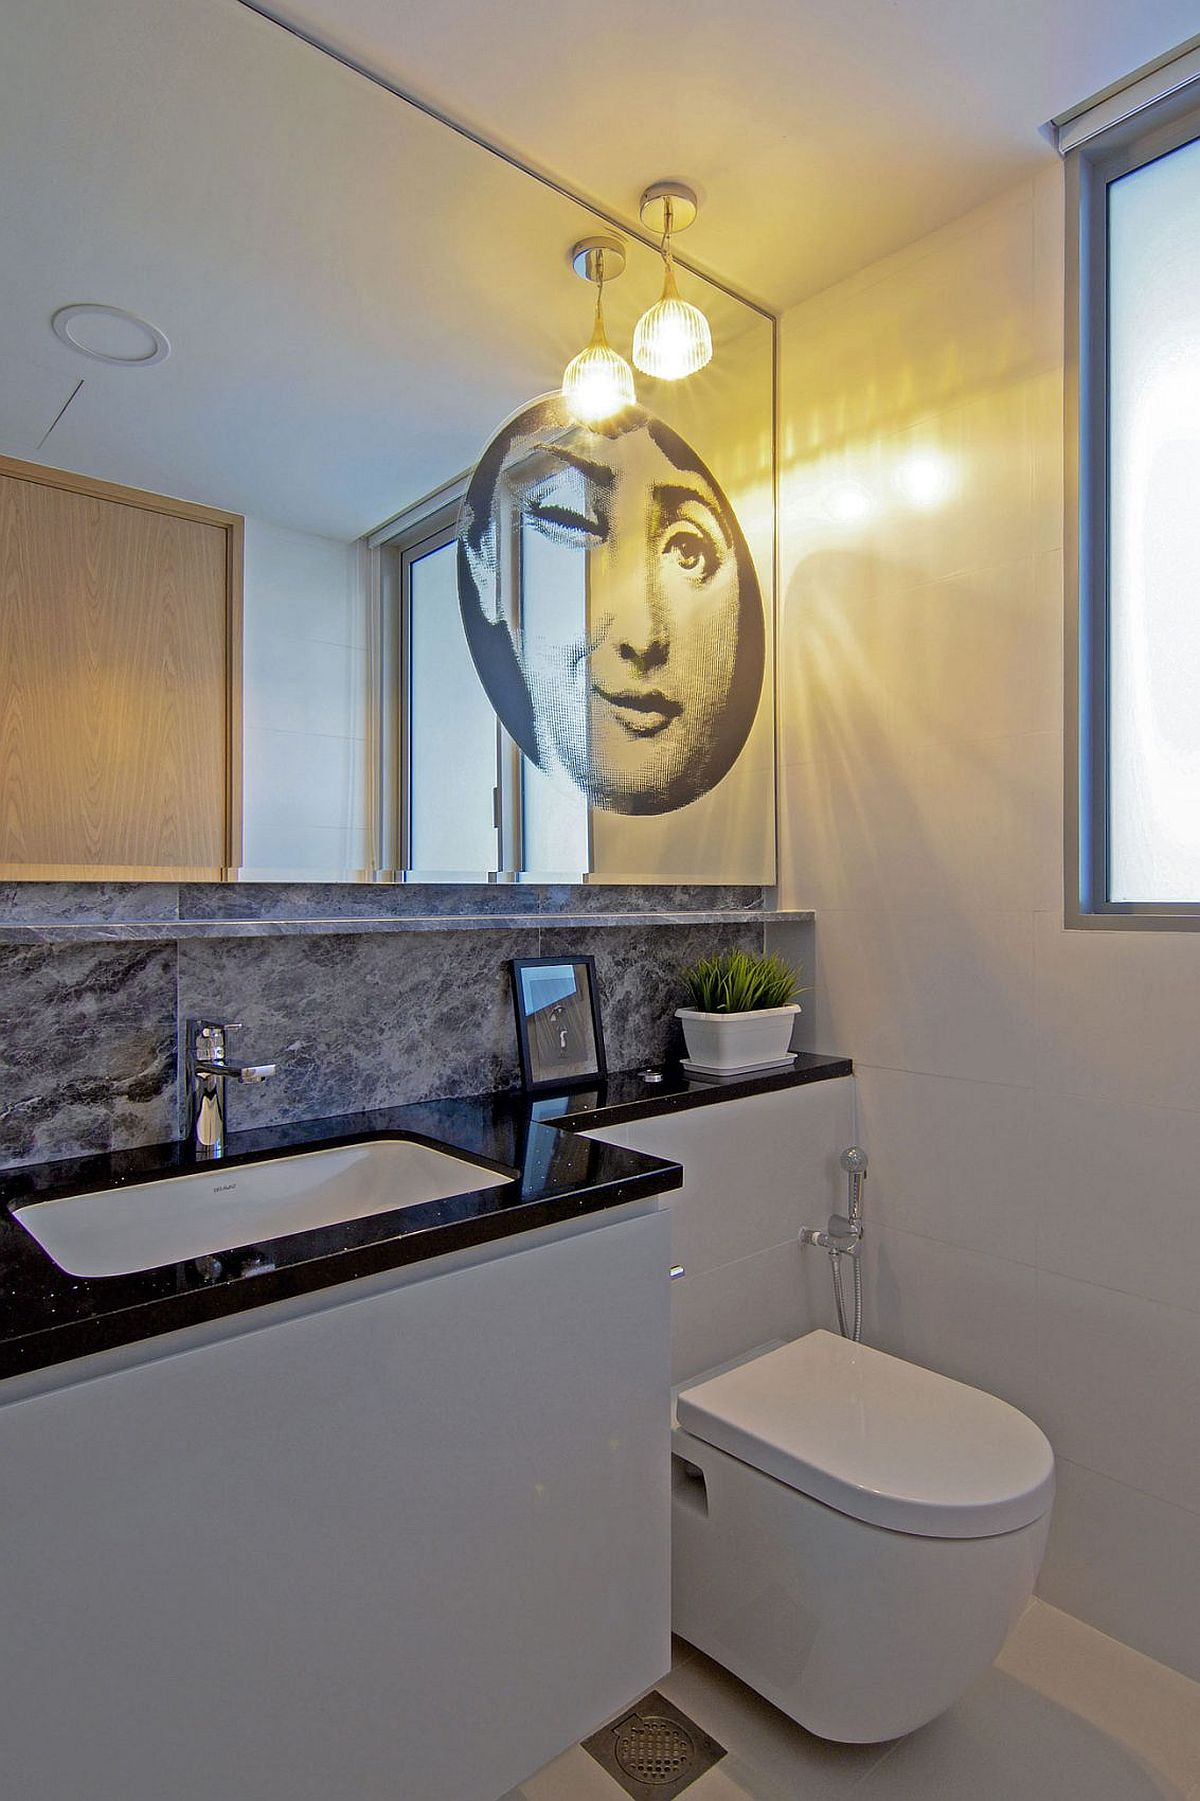 Playful art addition to the contemporary bathroom